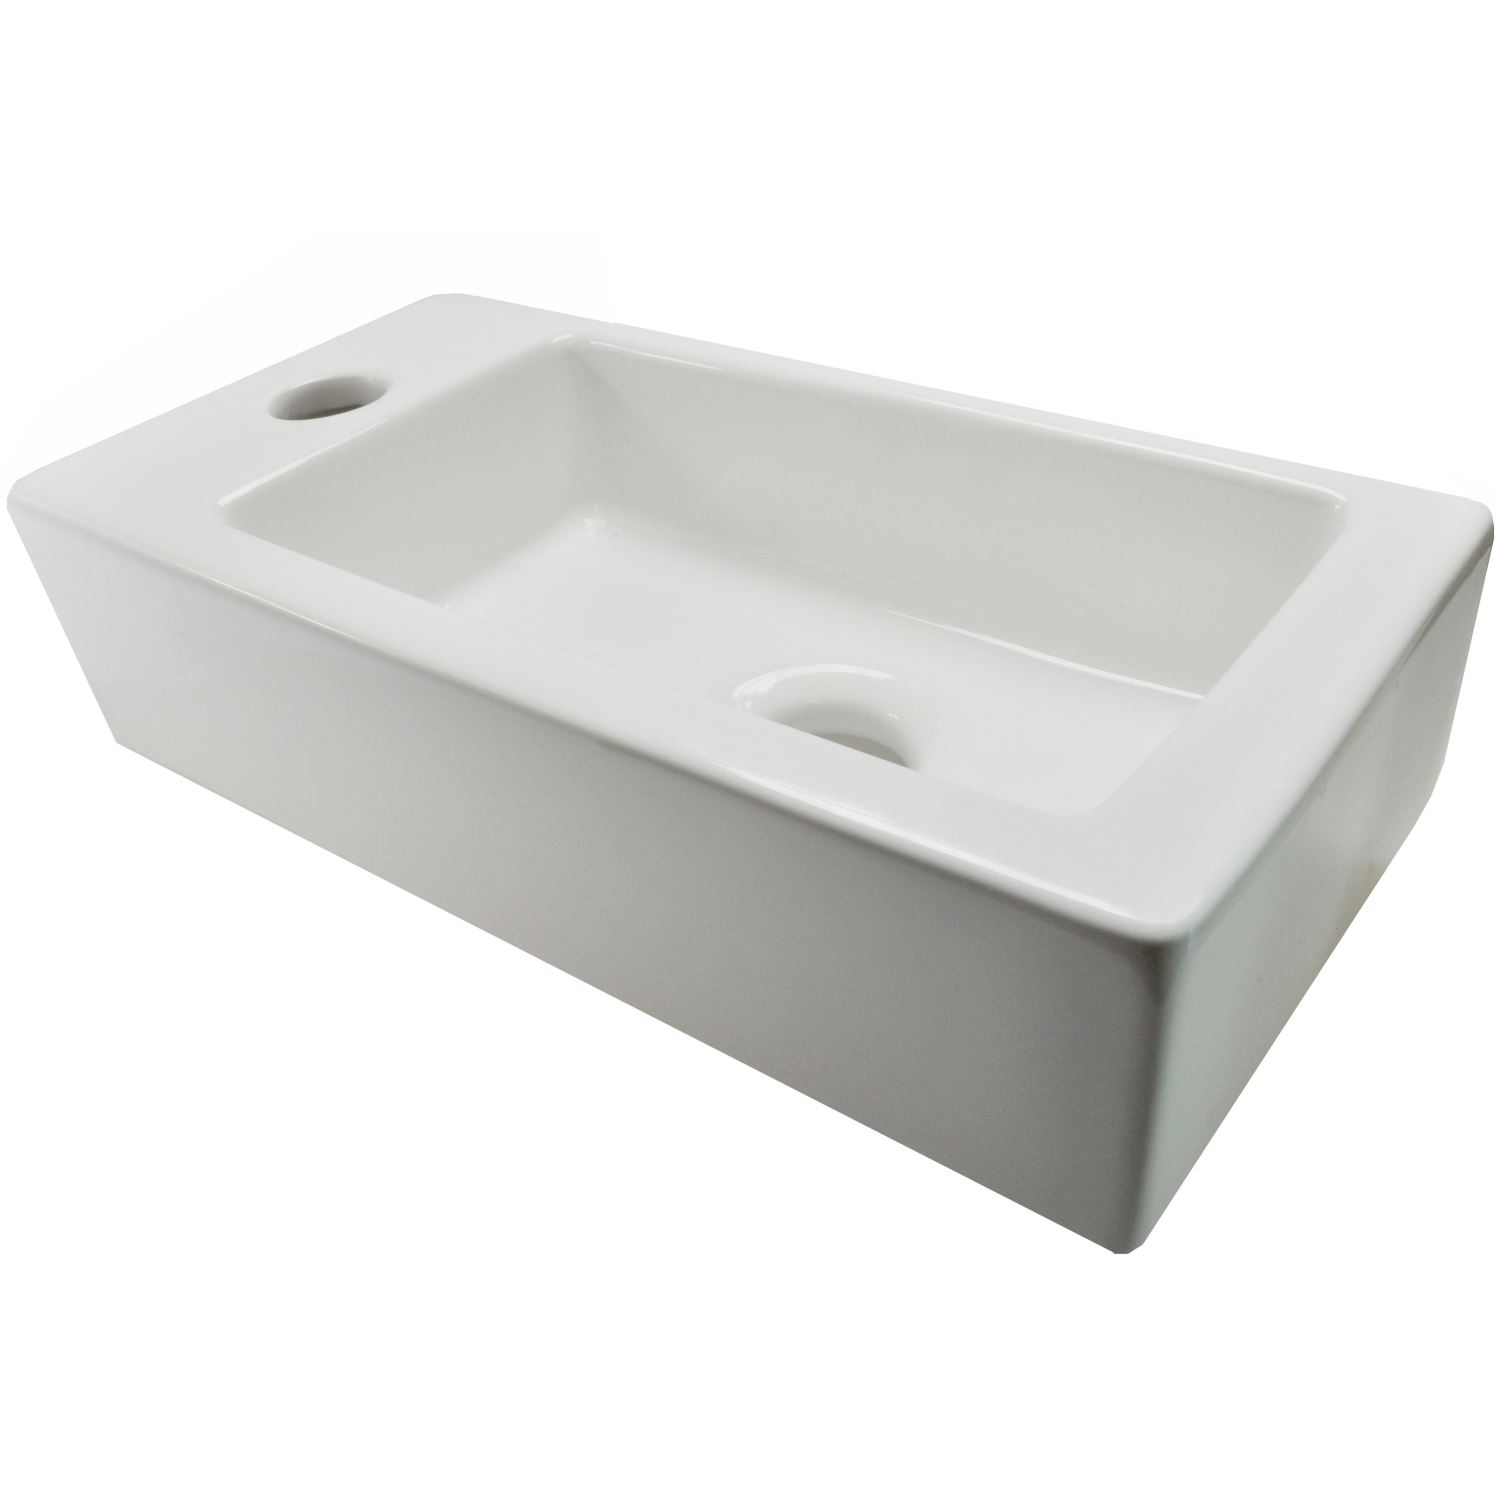 Wastafels 62053 BWS Mini Fontein Keramisch Blong Links 36x18x9 cm Wit